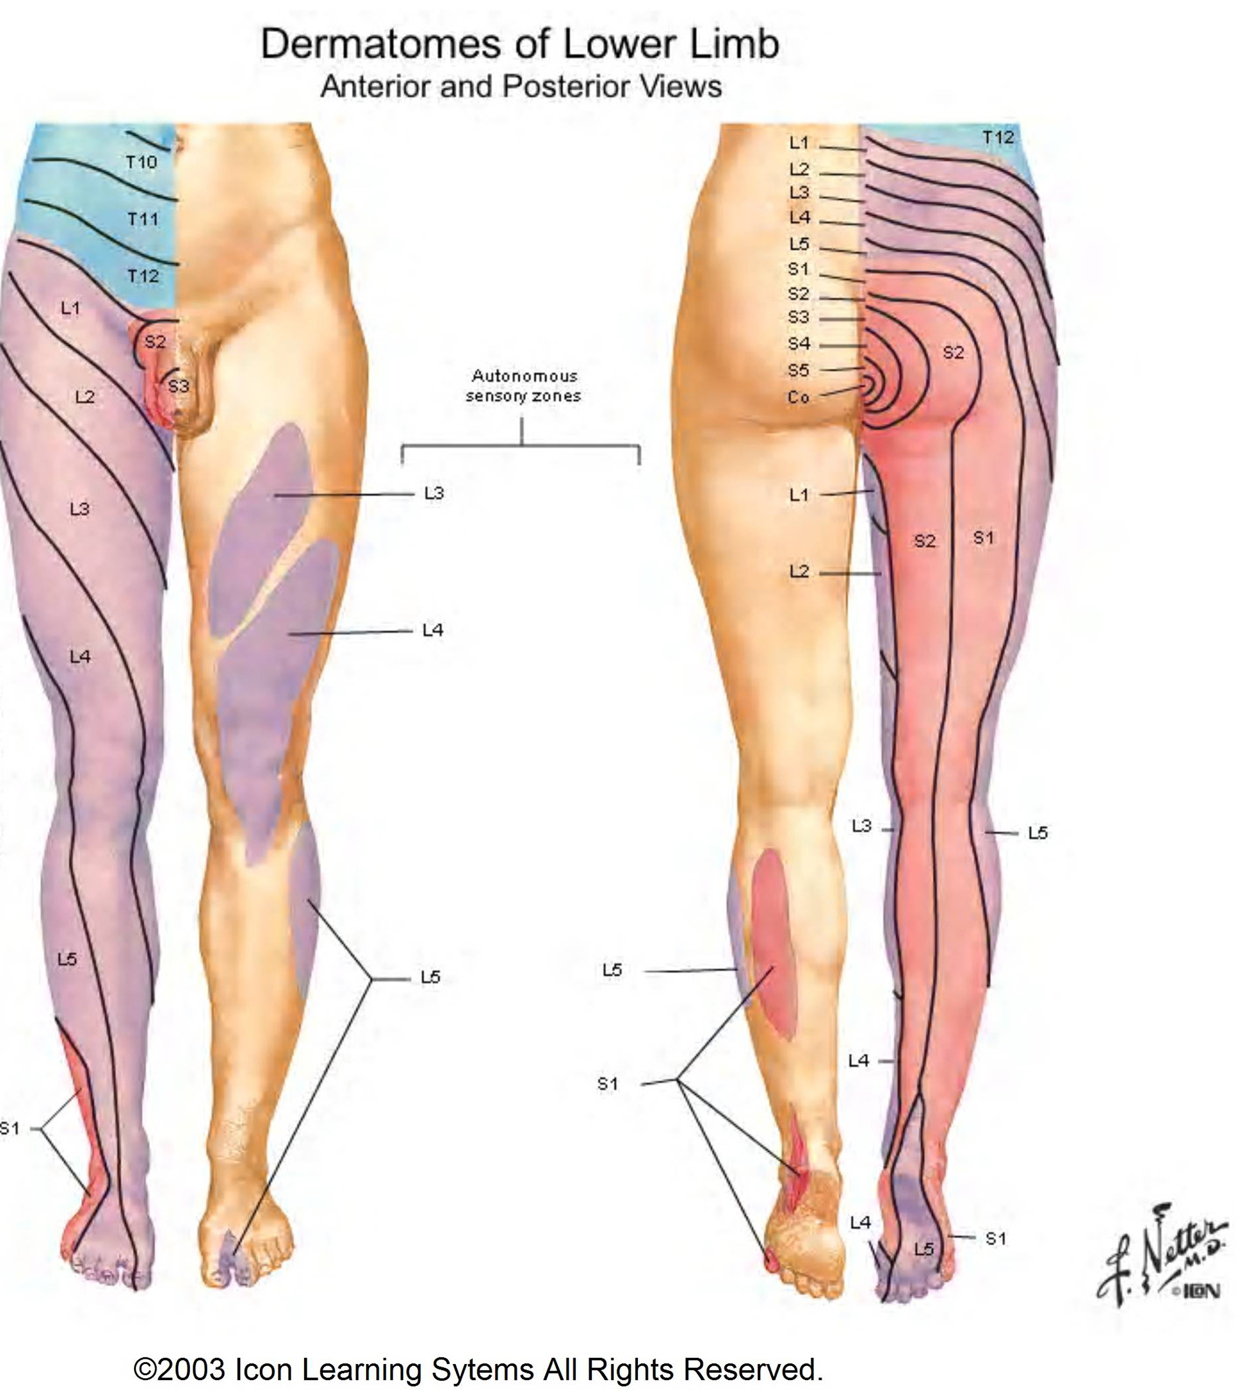 Starting at L1, we can appreciate that the spinal nerves progress down the front of the leg, and then back up the back of the leg to the saddle region (source).